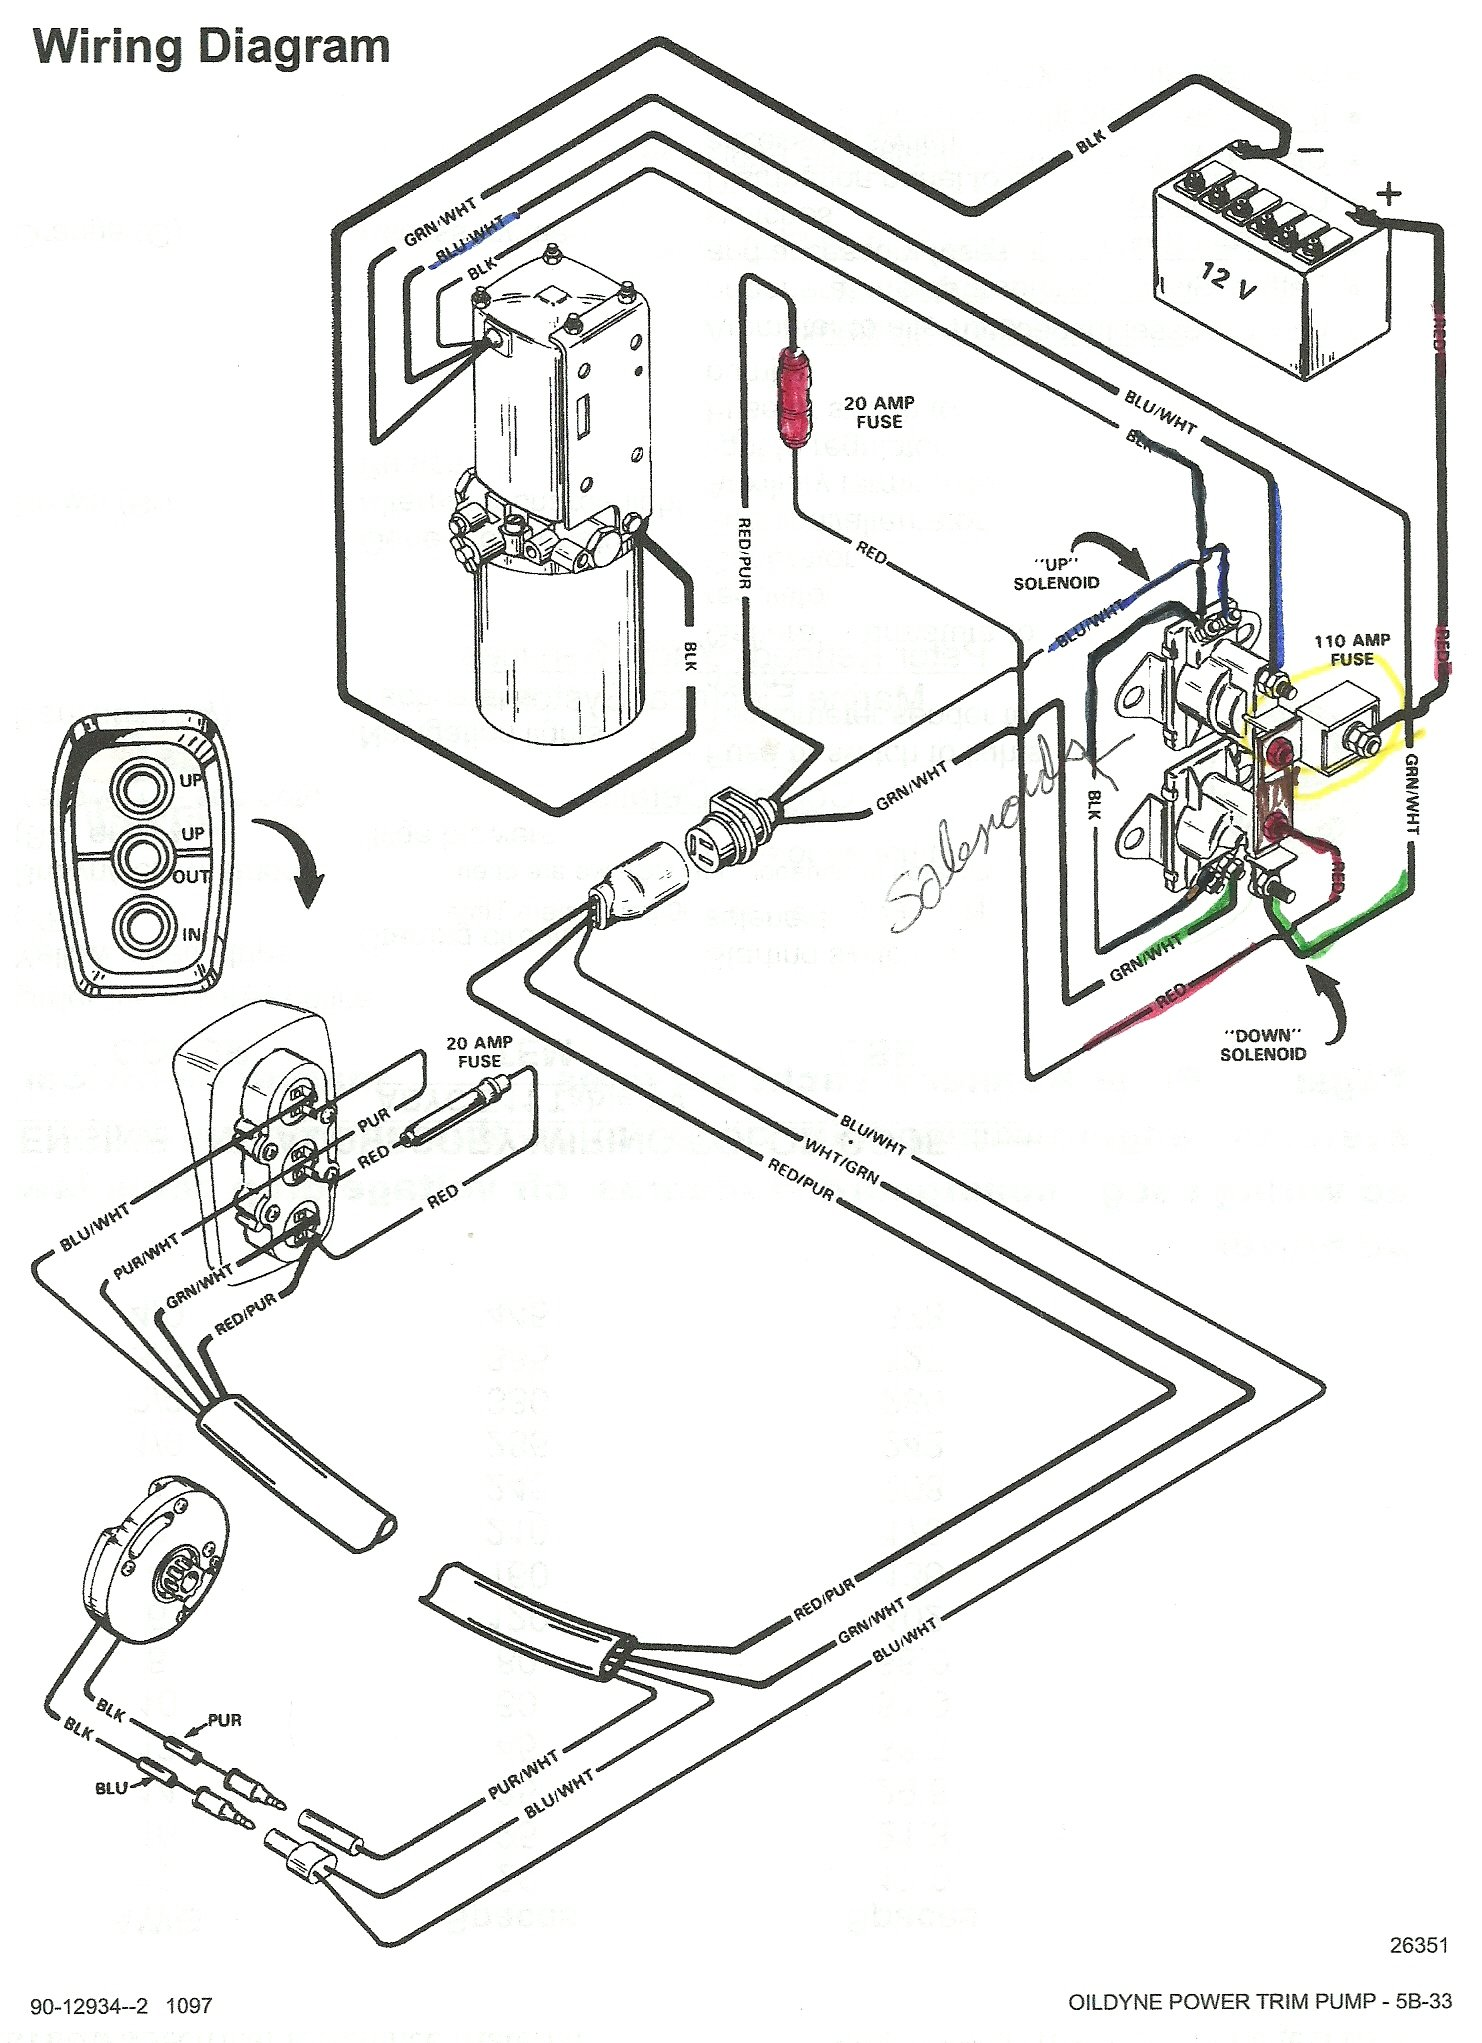 2012 06 21_144512_merc_t n t_old i have a mercruiser 898r from 1983 the trim up switch stopped mercruiser alpha one trim pump wiring diagram at panicattacktreatment.co